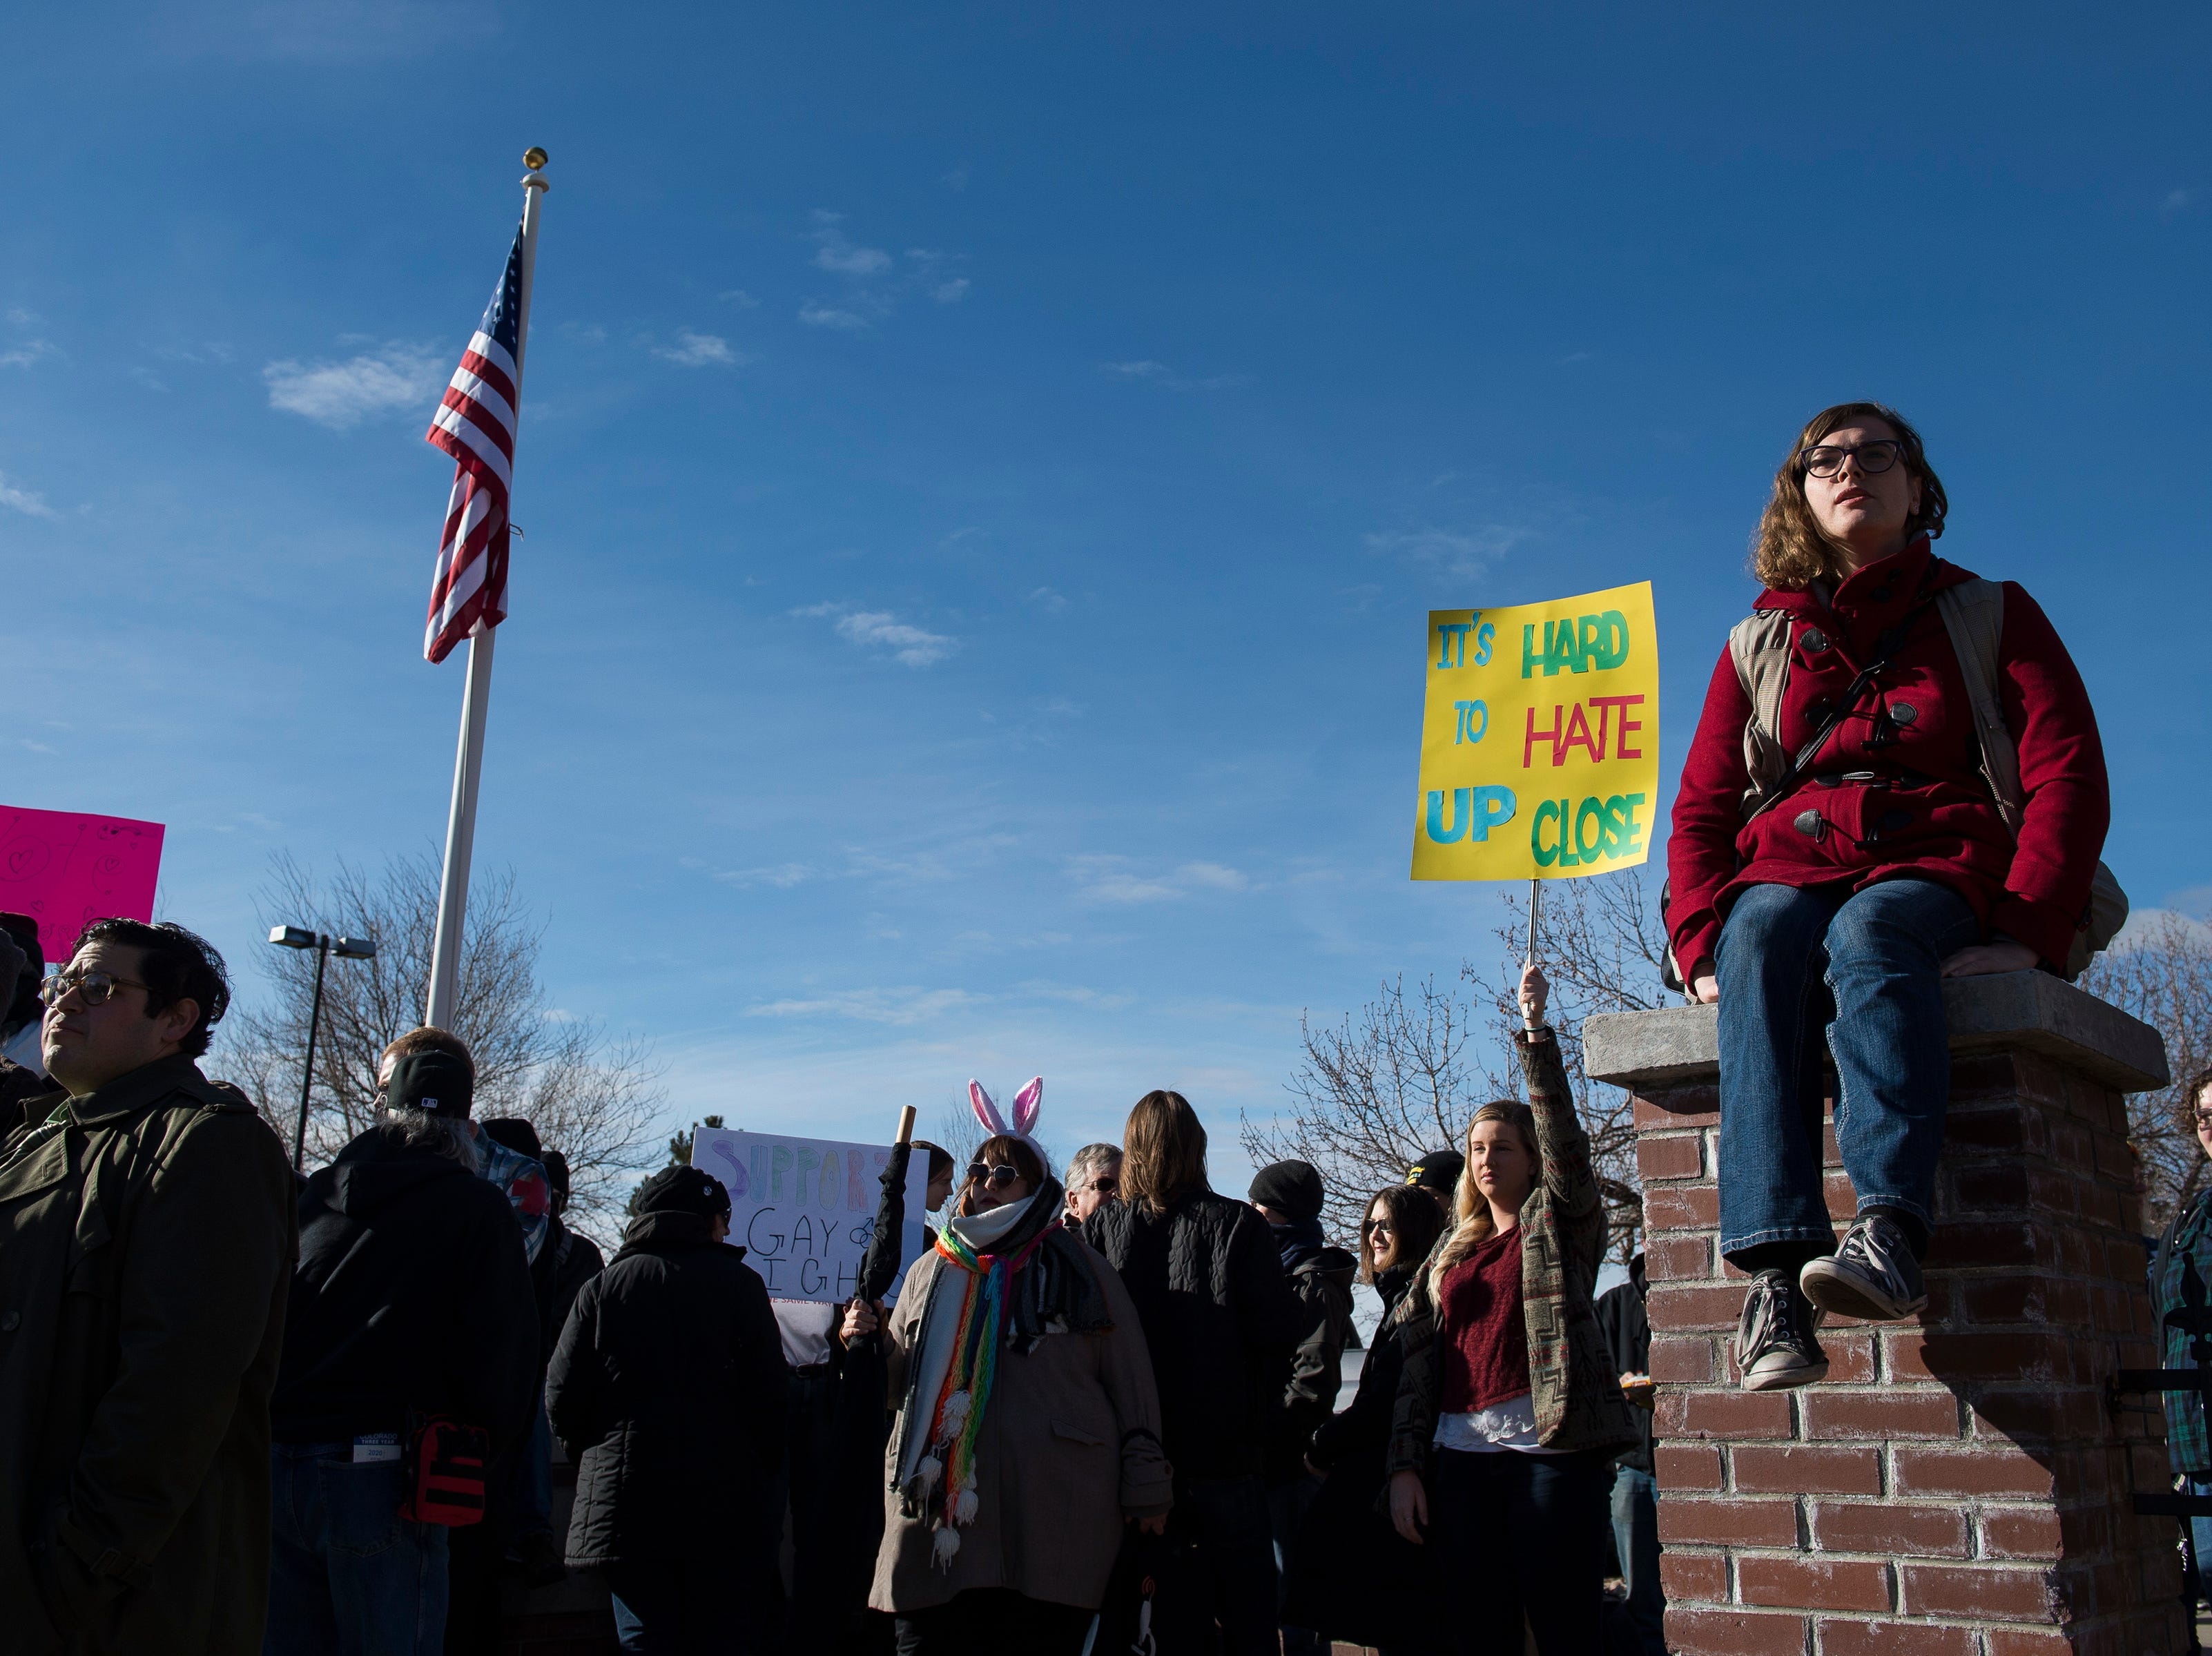 Counterprotester Violet Valentine sits on a gate while others gather outside the library before Drag Queen Story Hour on Saturday, Jan. 12, 2019, at the Clearview Public Library in Windsor, Colo. Drag Queen Story Hour is a program put on by SPLASH, an LGBTQ+ youth outreach organization.